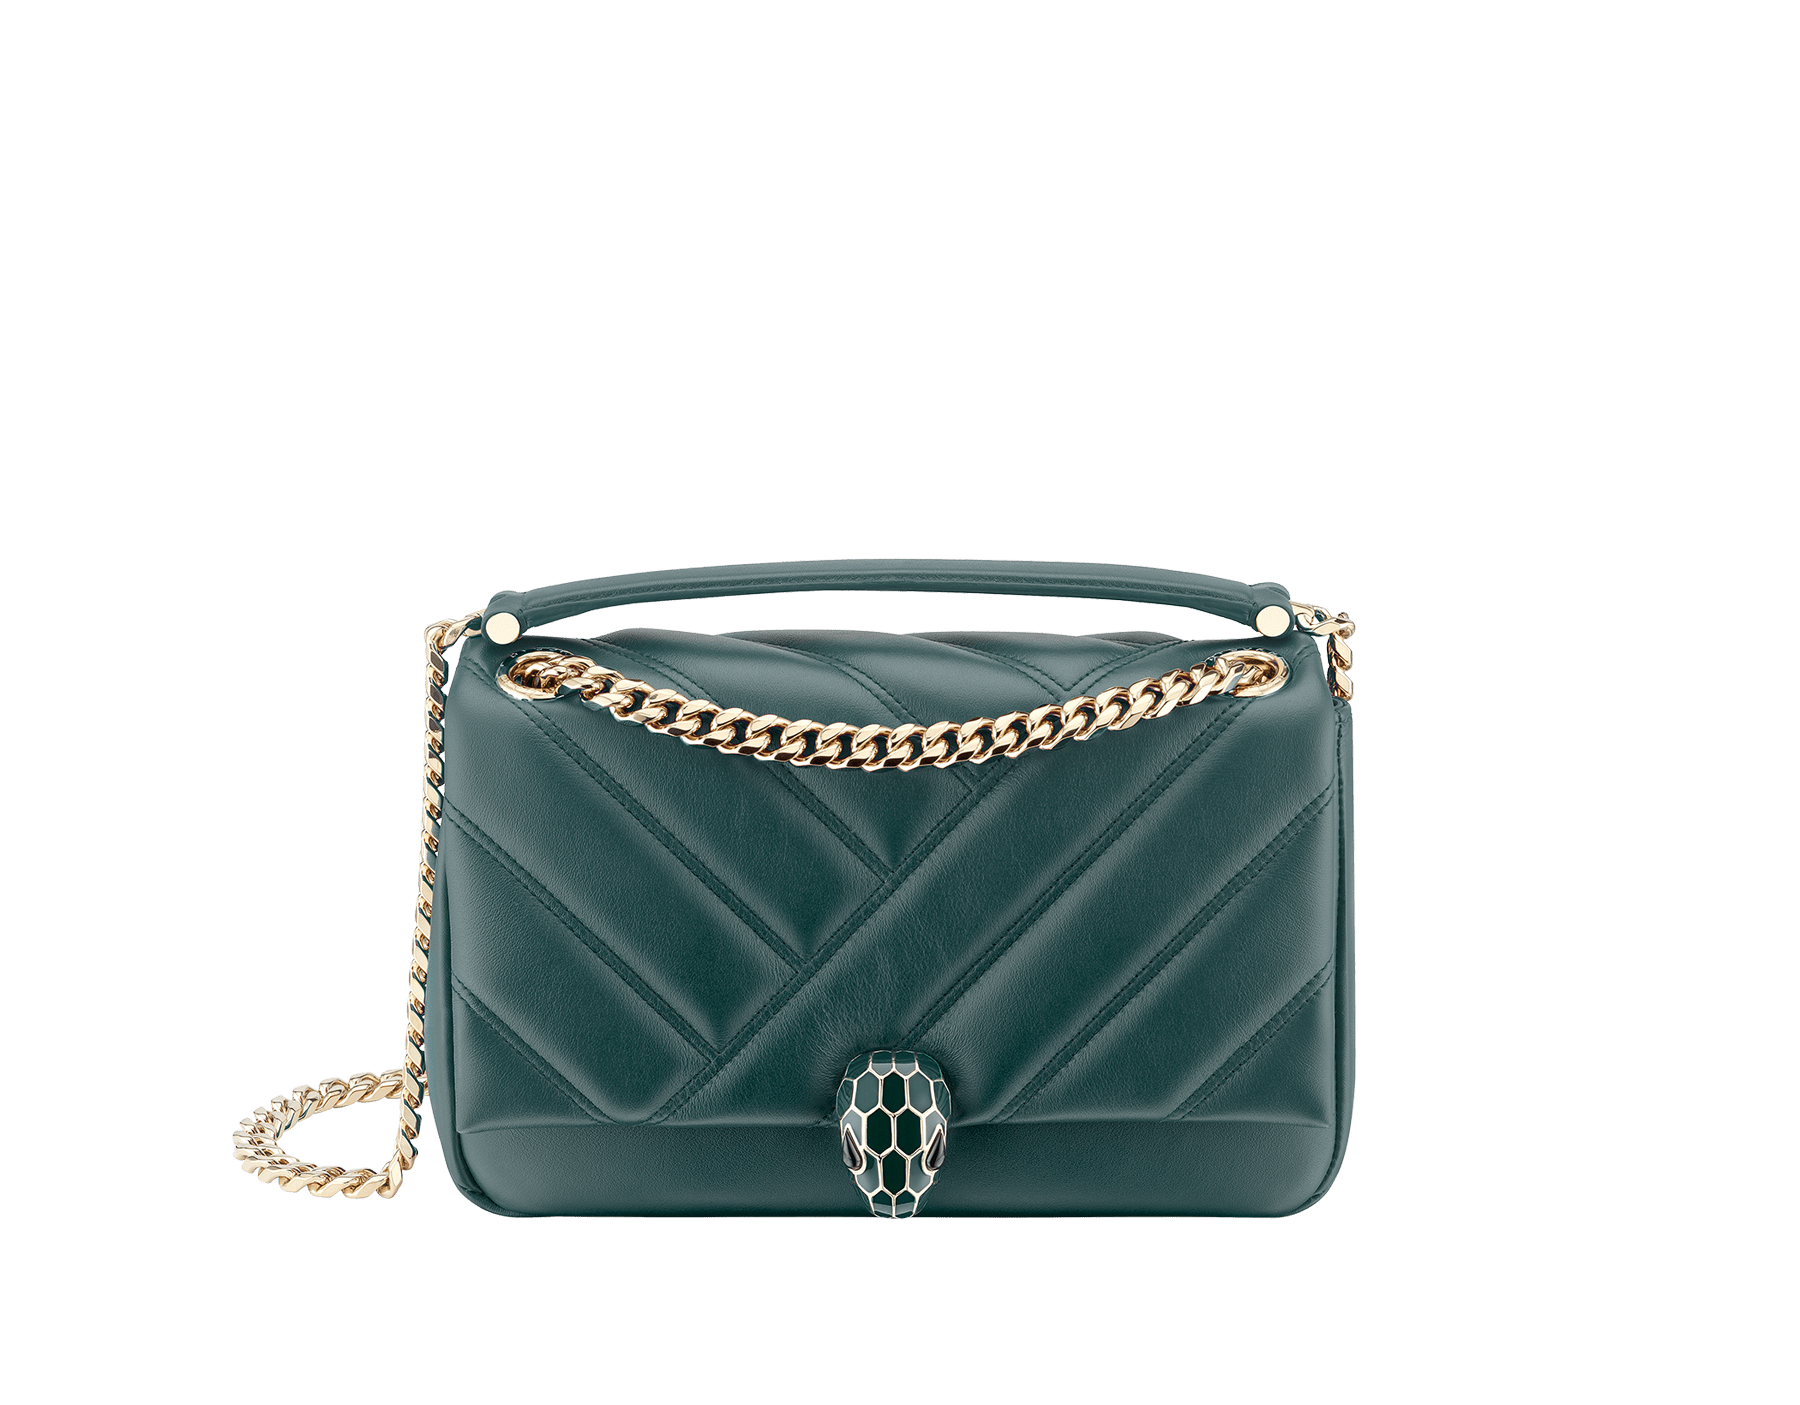 Serpenti Cabochon shoulder bag in soft quilted forest emerald calf leather, with a graphic motif. Brass light gold plated tempting snakehead closure in forest emerald enamel and black onyx eyes. 288719 image 1